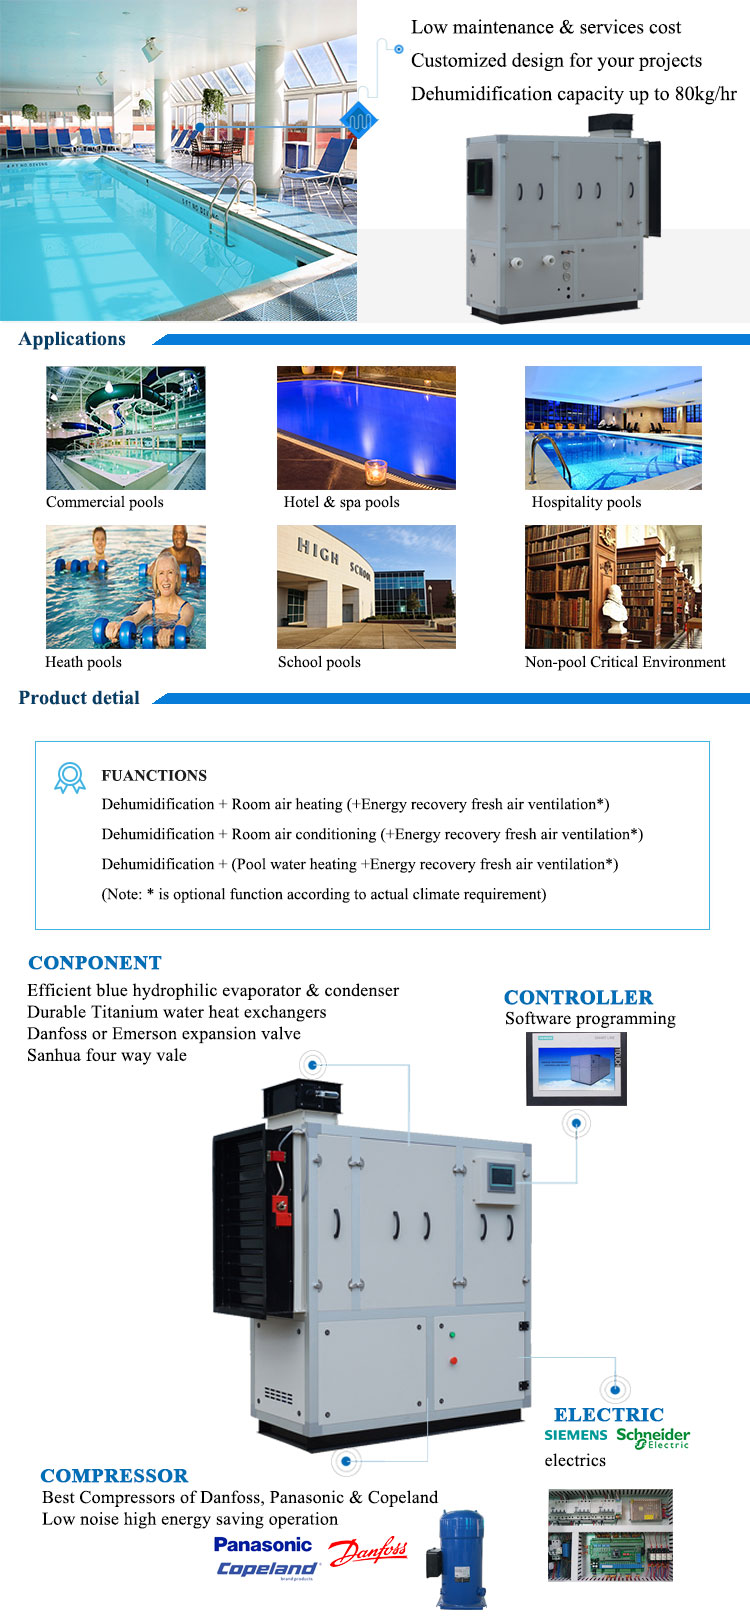 Altaqua 15L/h industrial dehumidifier machine for swimming pool